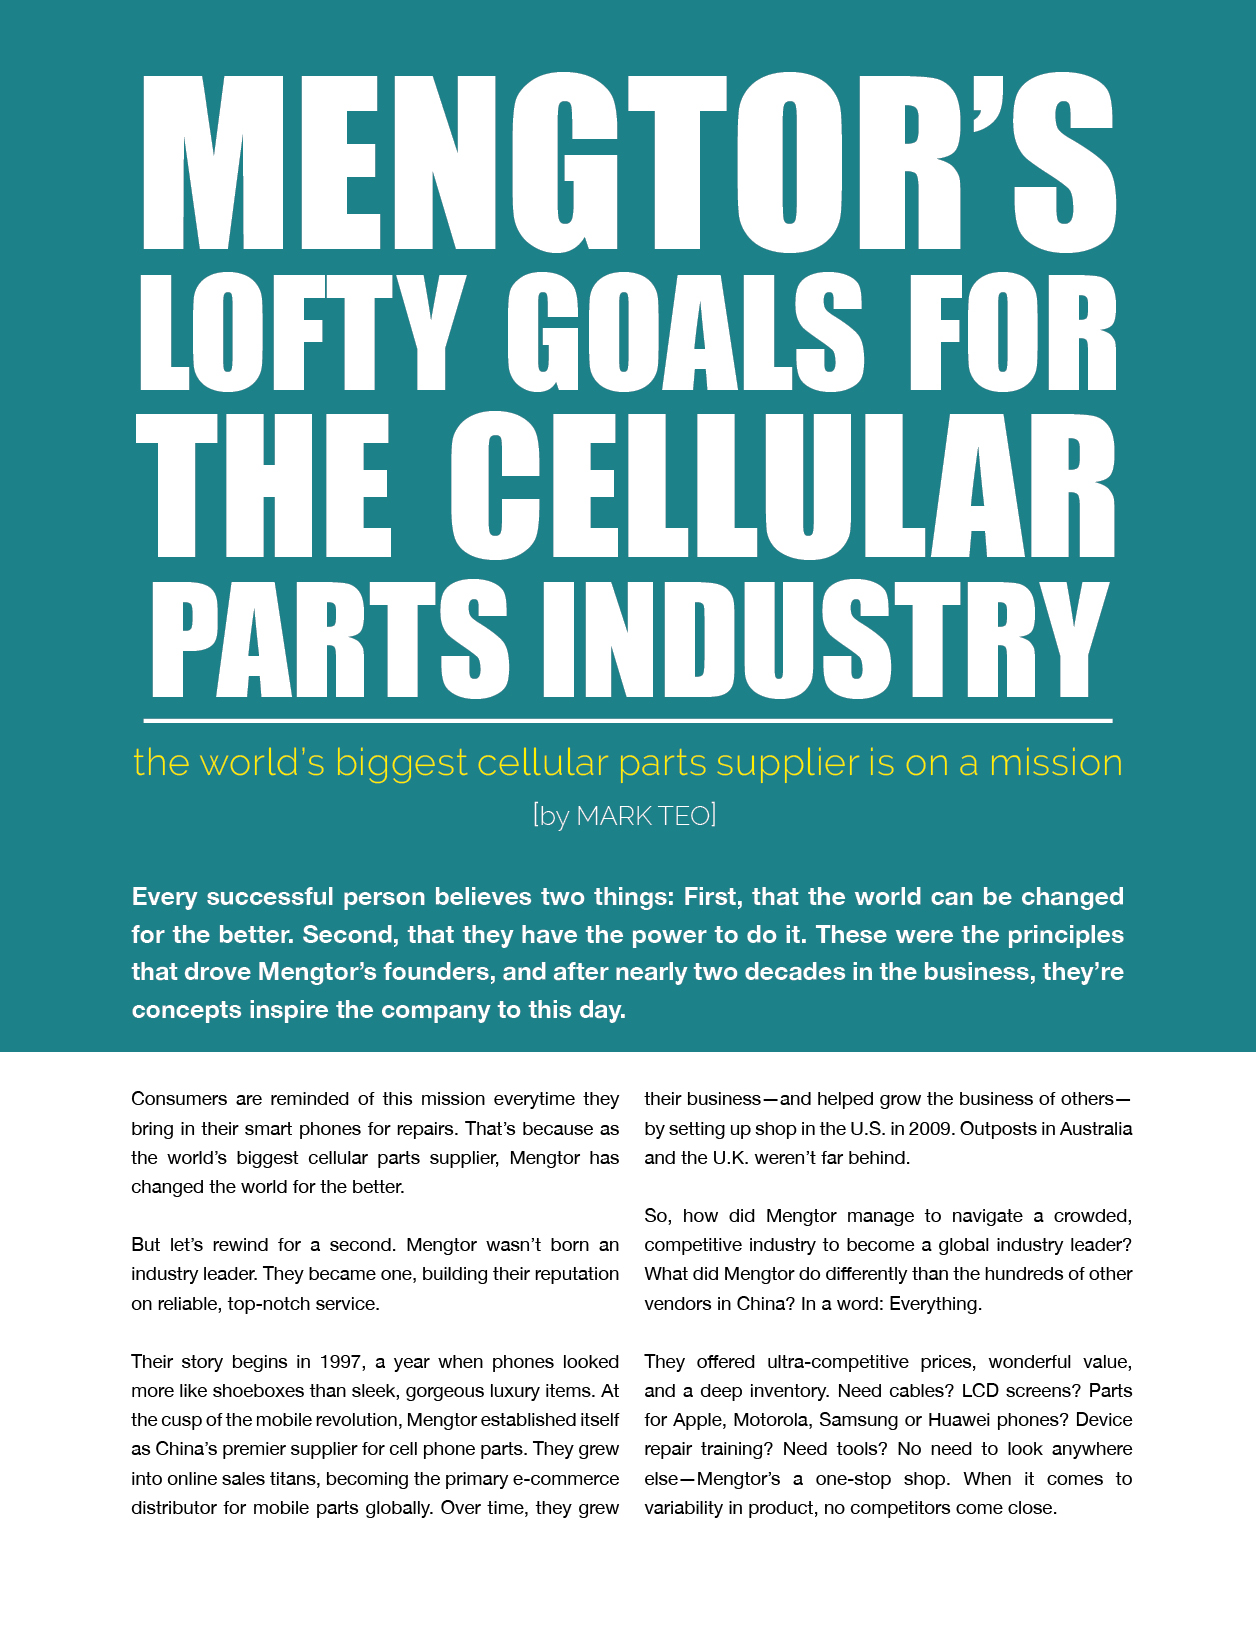 Mengtor's lofty goals for the cellular parts industry